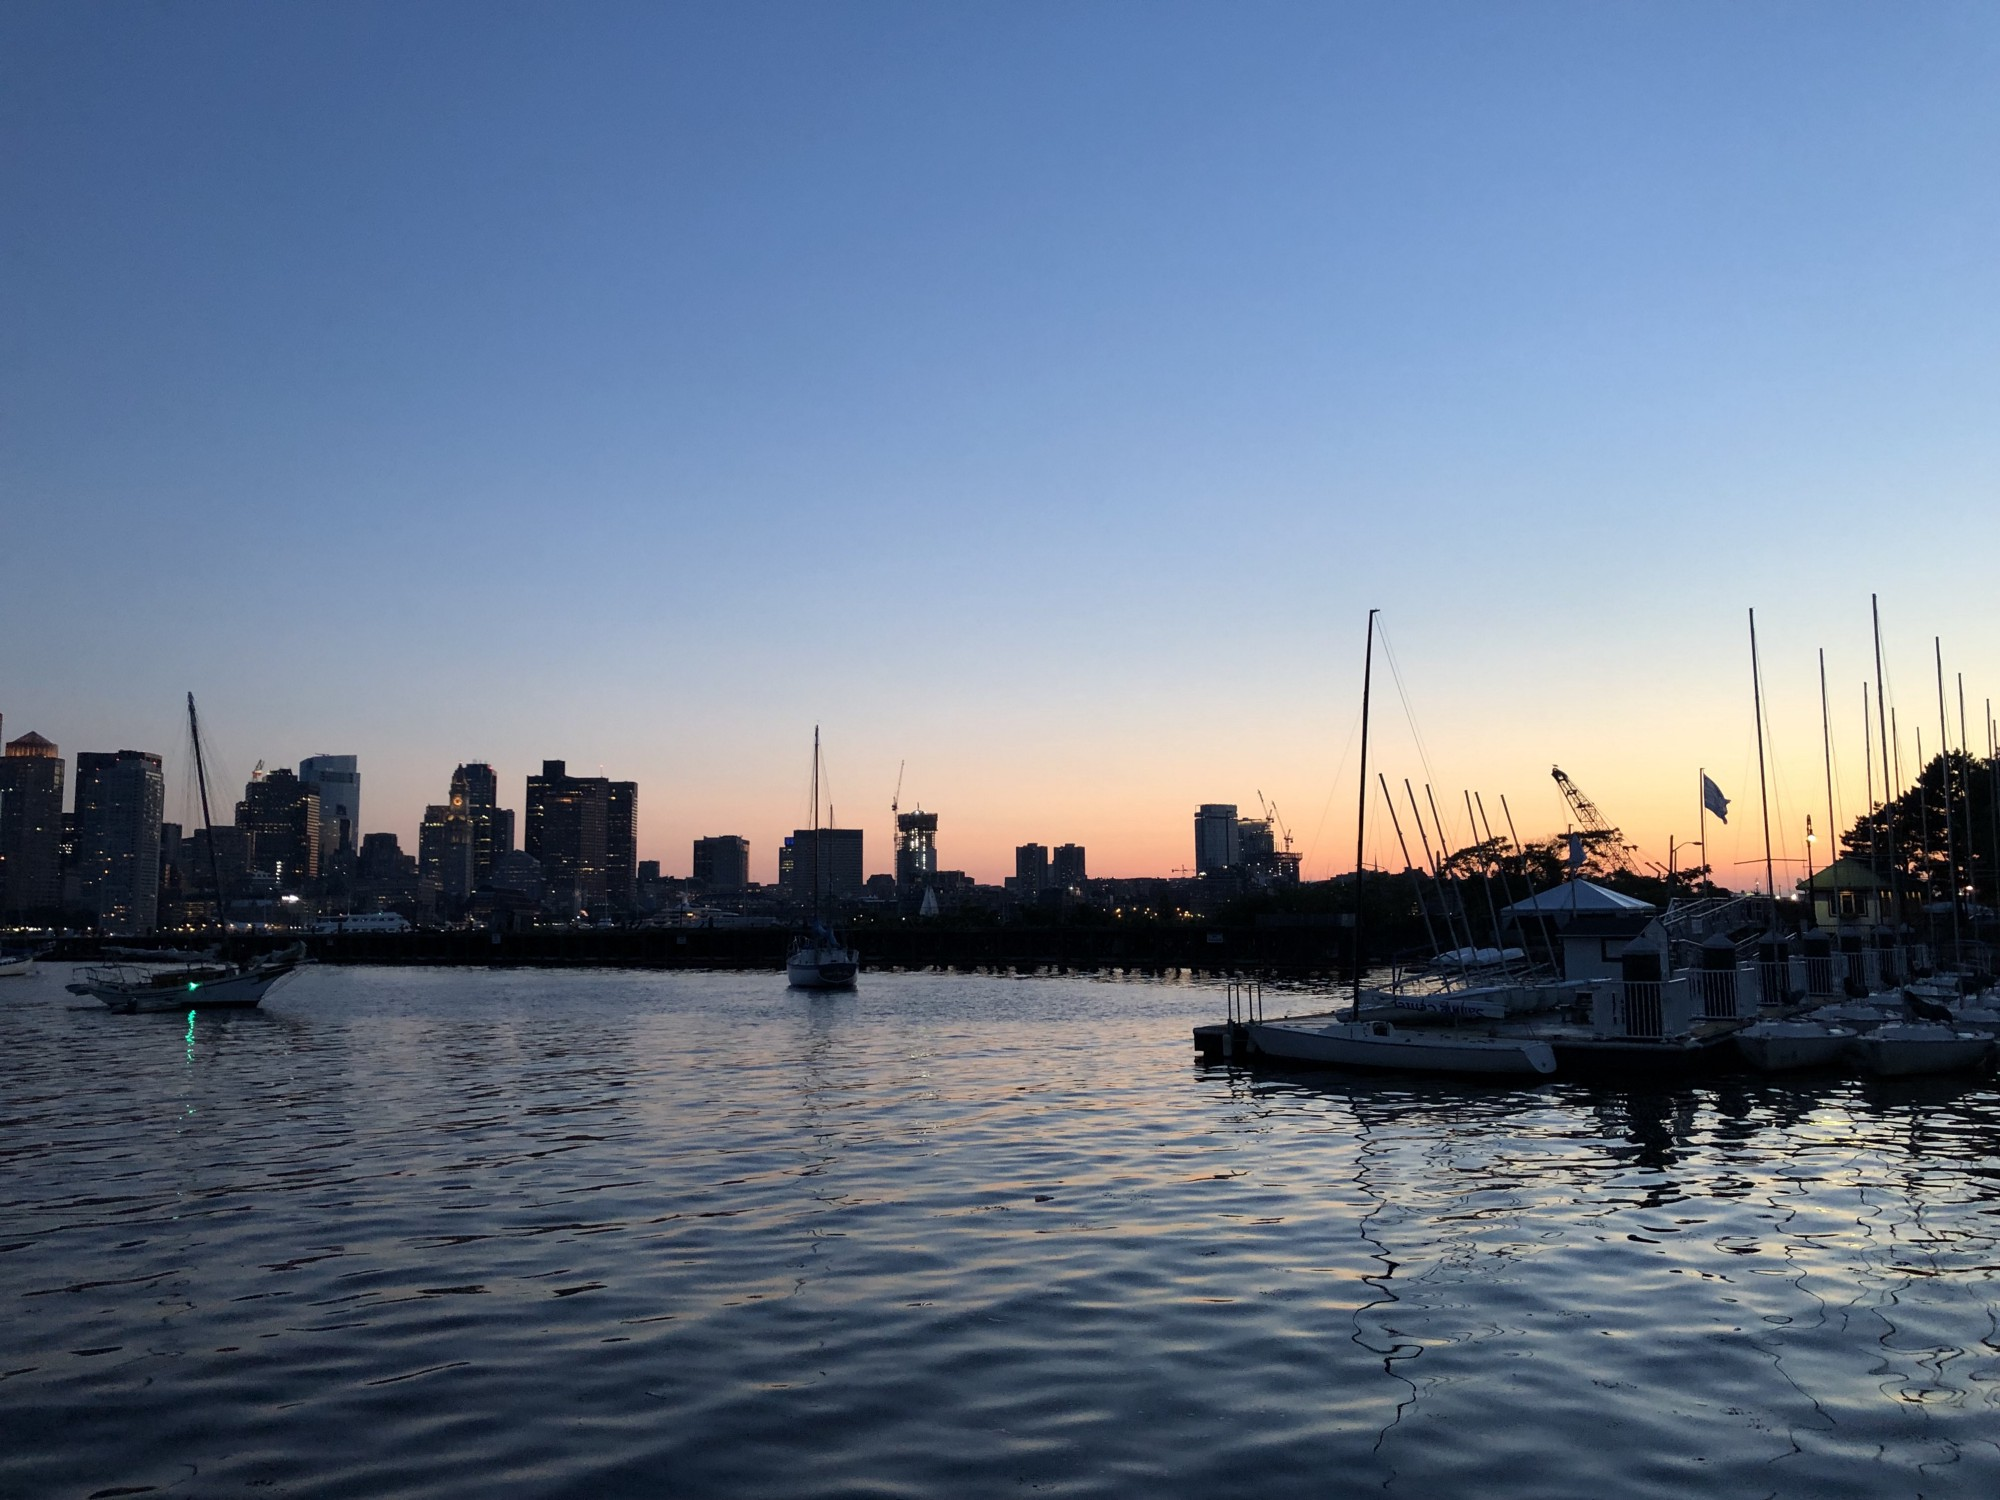 The Boston Harbor at dusk with buildings in the background and boats in the foreground.